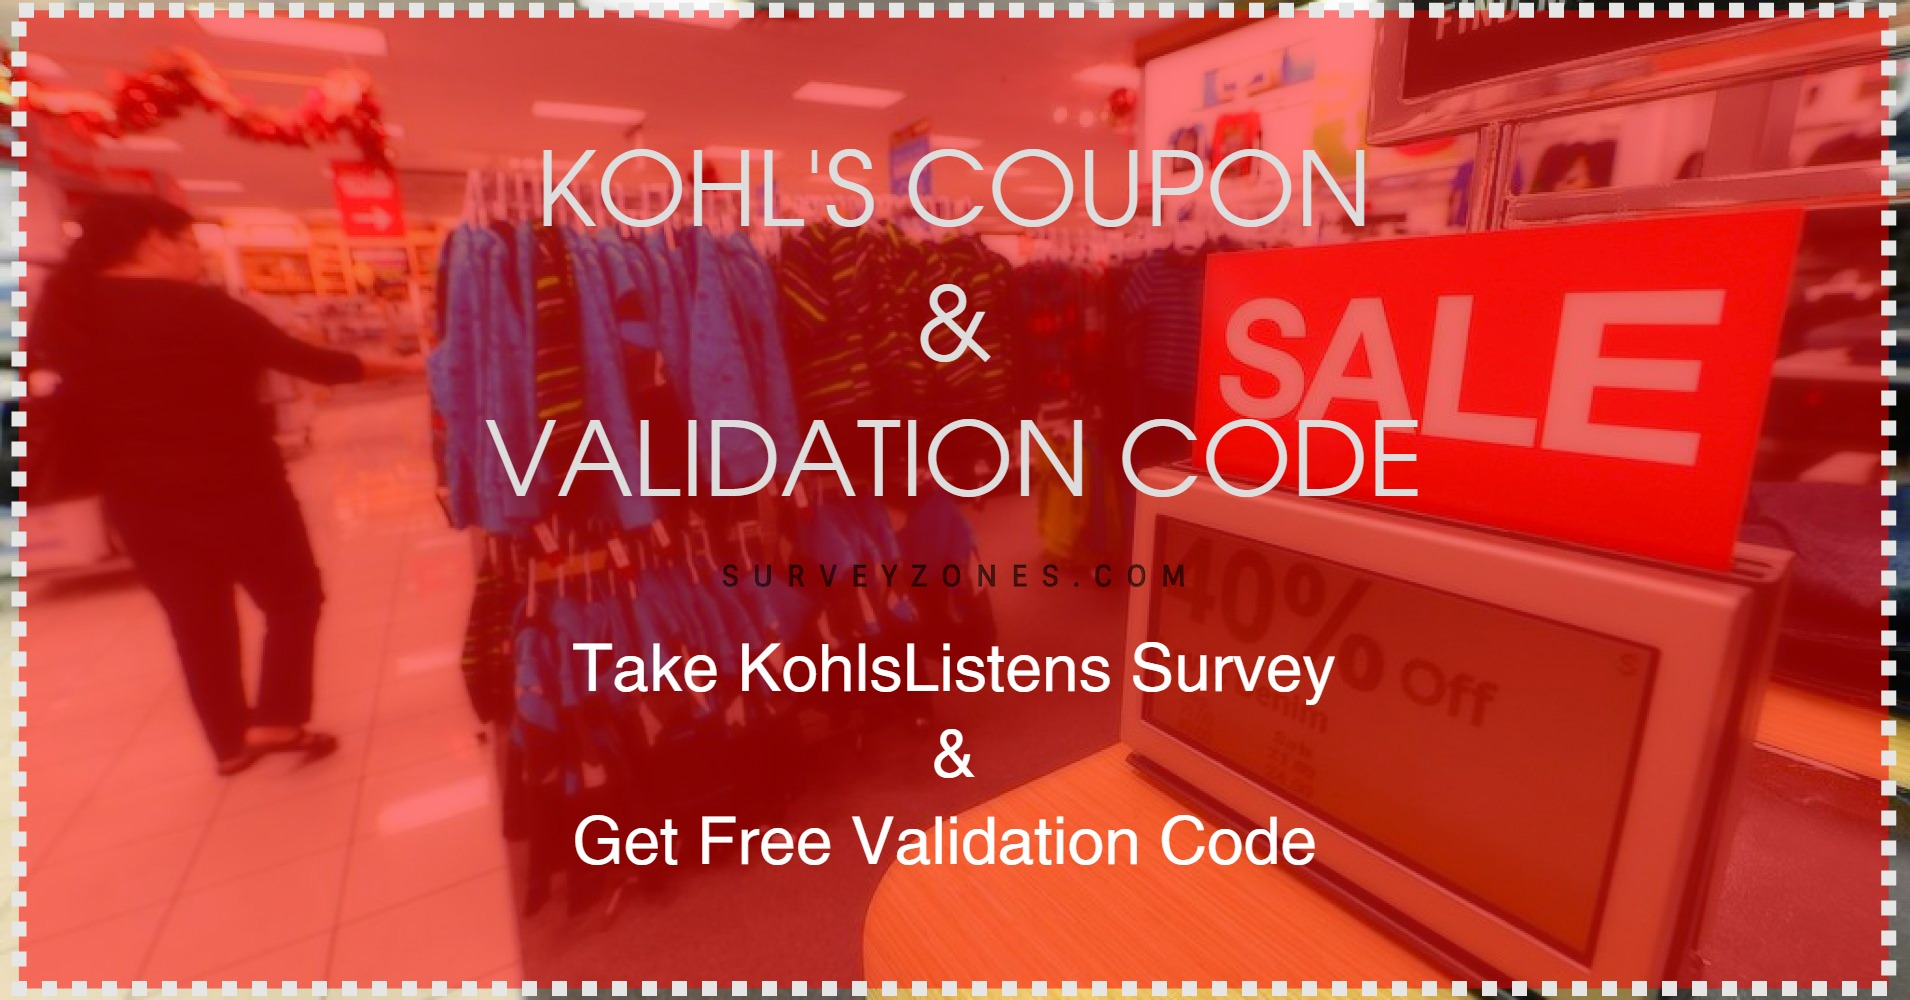 Kohls Listens Survey Free Validation Code